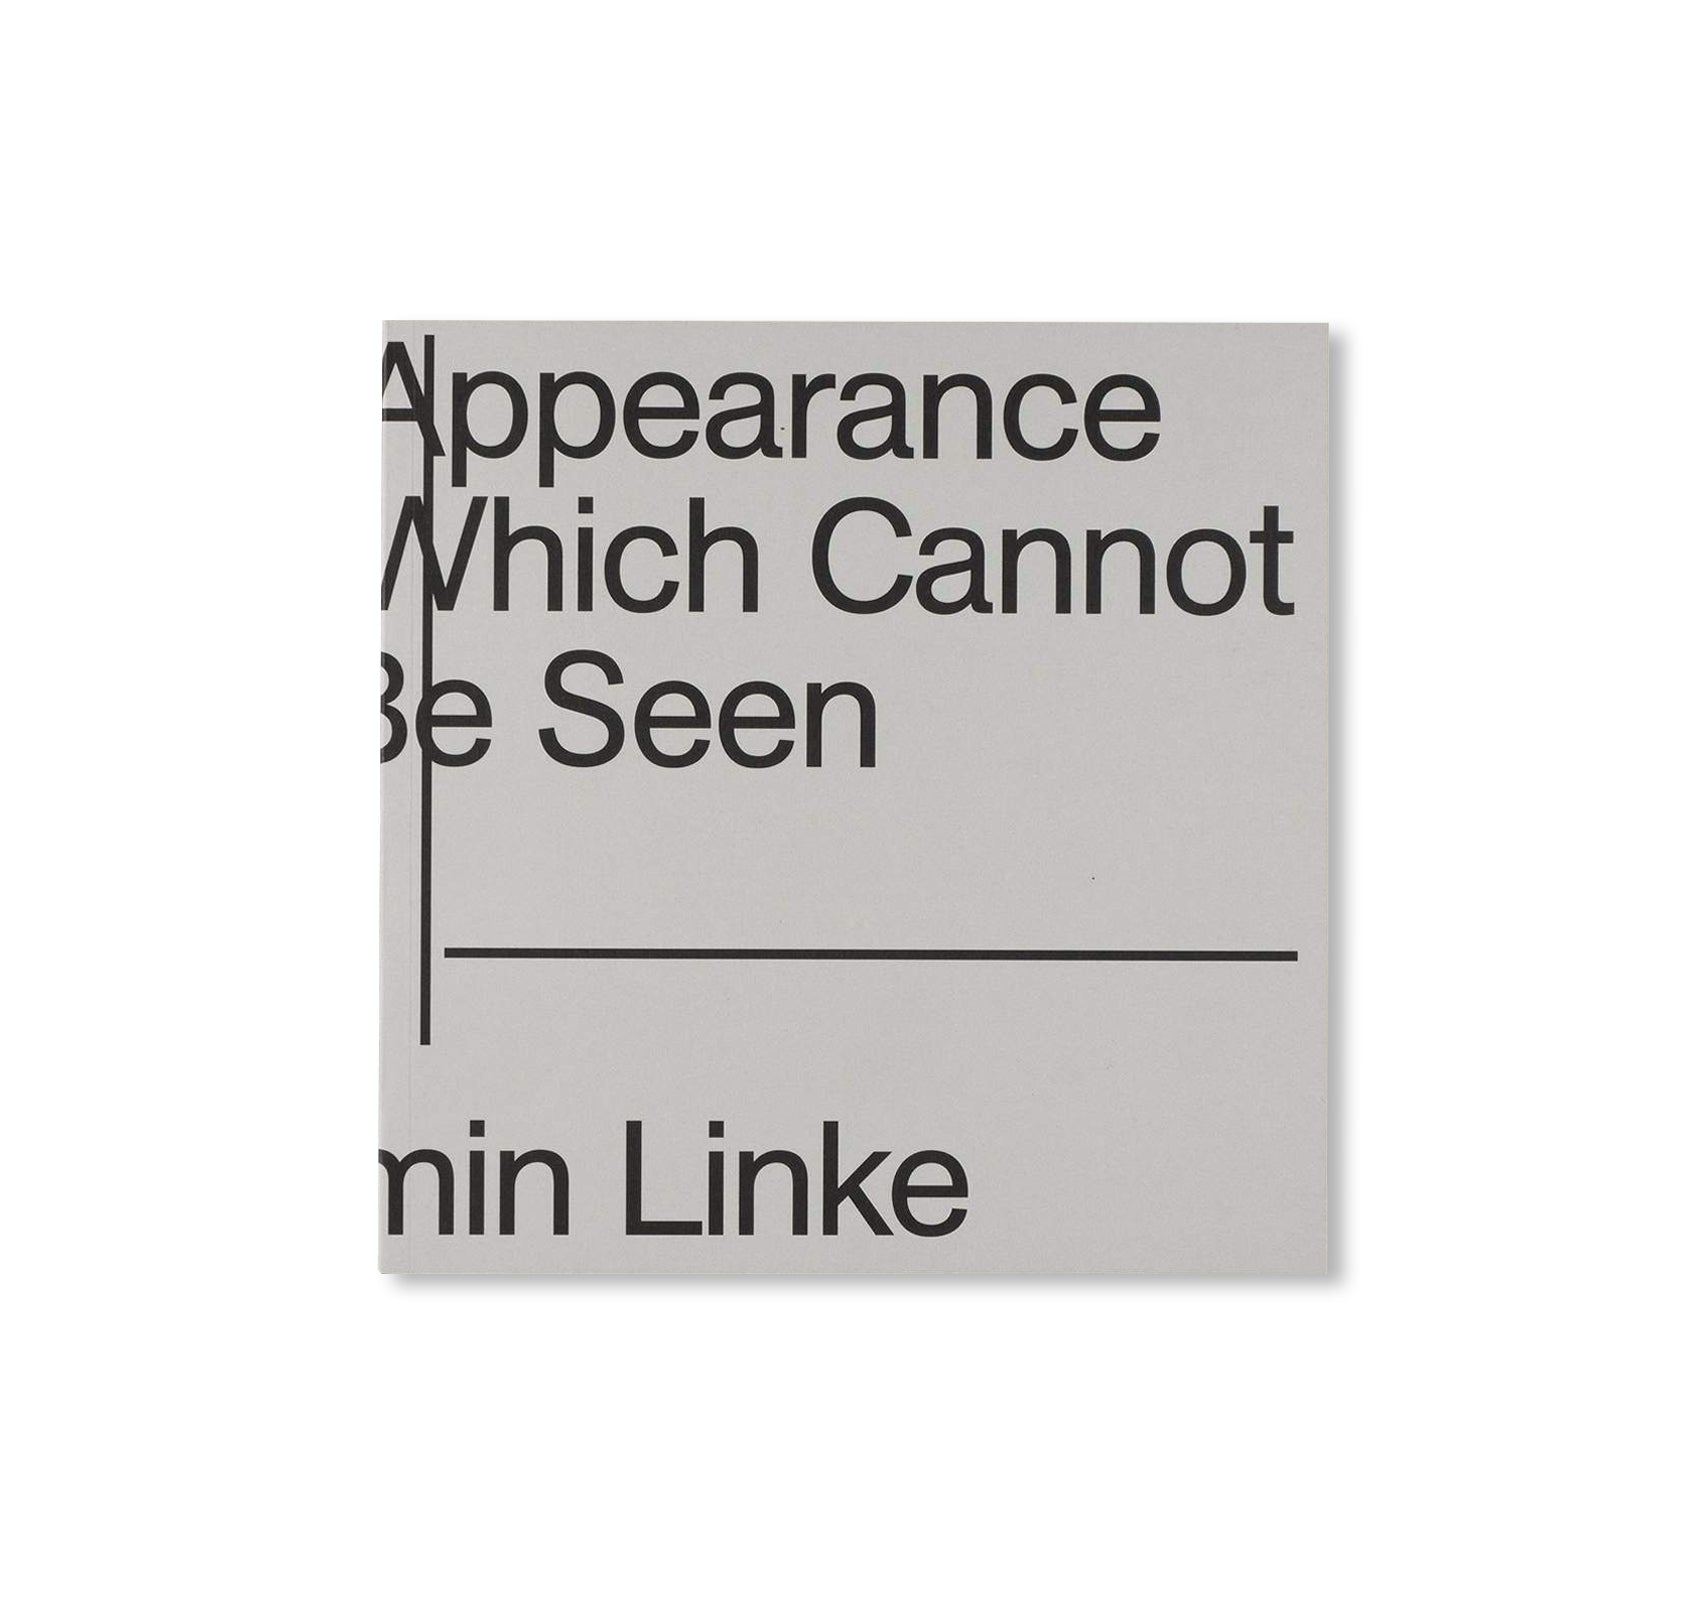 THE APPEARANCE OF THAT WHICH CANNOT BE SEEN by Armin Linke